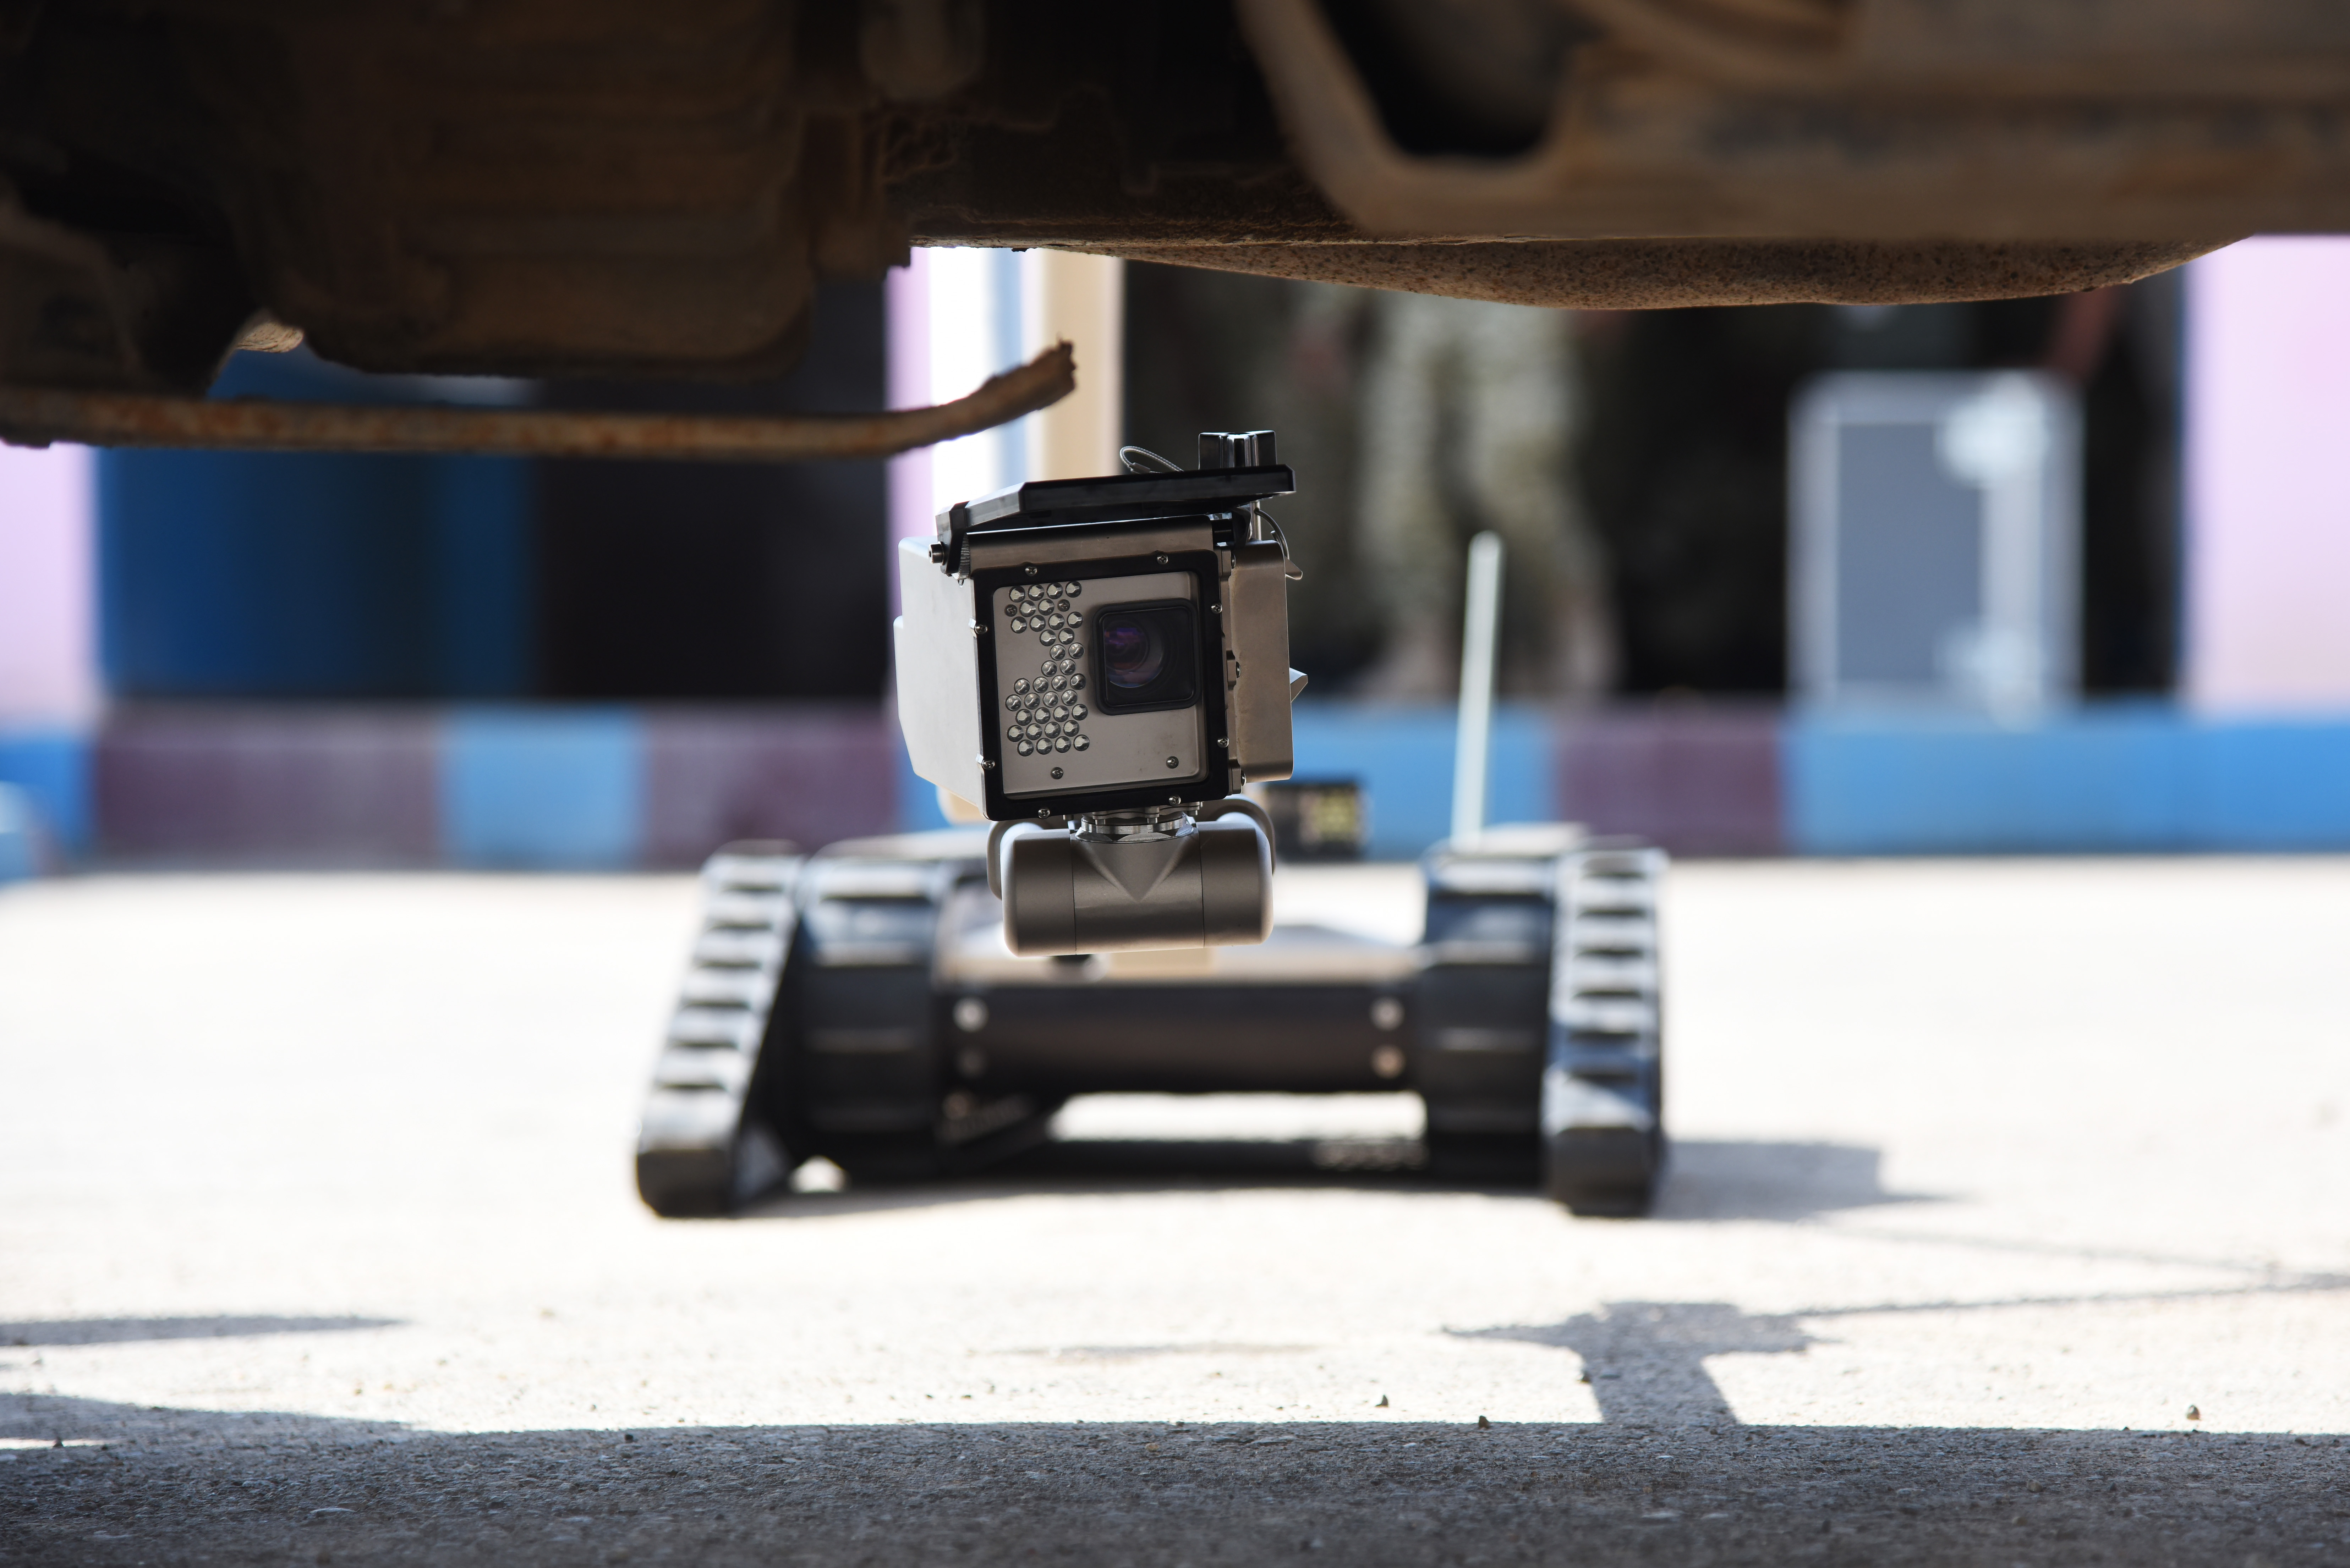 An iRobot 510 Packbot searches for explosive devises under a vehicle during a course in Djibouti, Oct. 12, 2015. Djibouti Armed Forces (FAD) service members and explosive ordnance disposal technicians assigned to Camp Lemonier learned how to operate the robot. (U.S. Air Force photo by Staff Sgt. Maria Bowman)